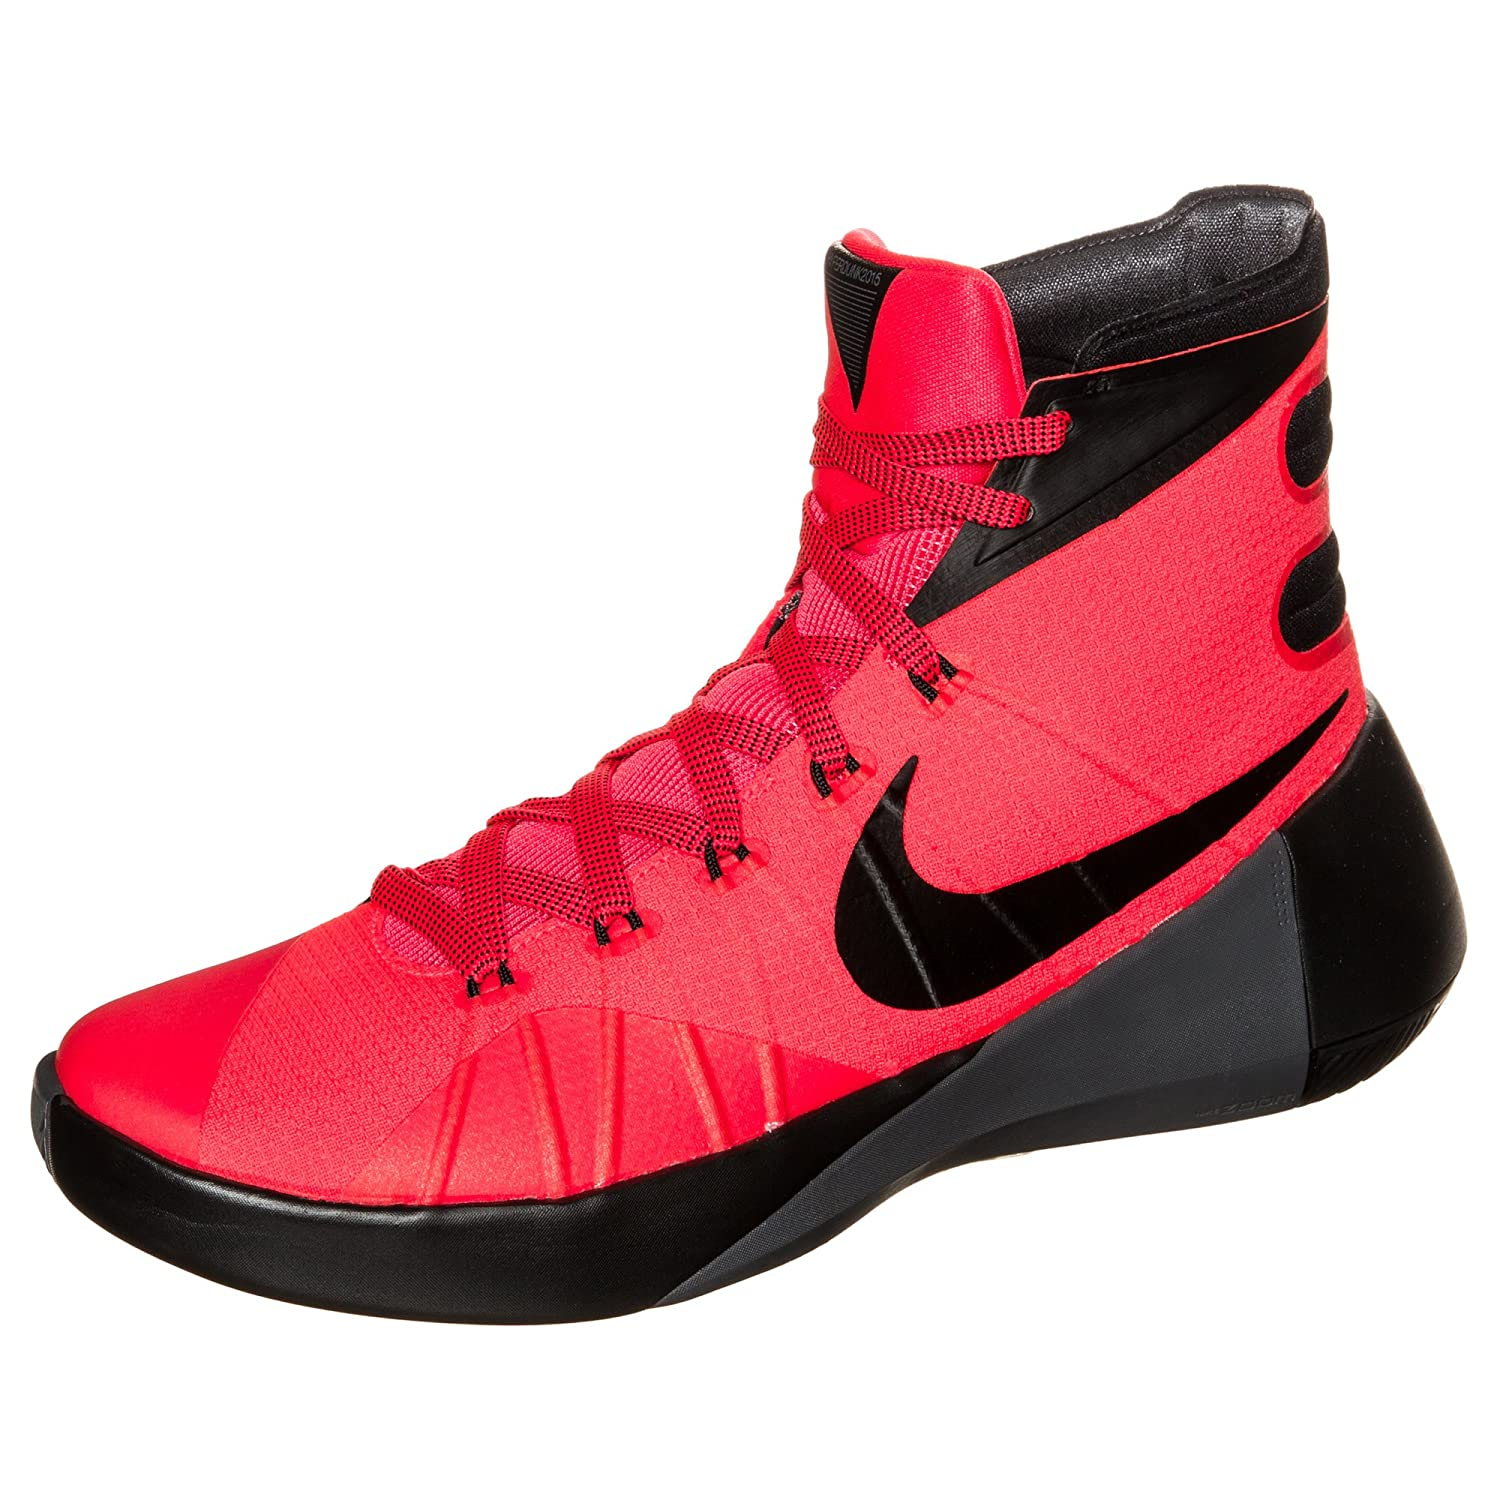 low priced 586da aafe6 nike Hyperdunk 2015 Mens hi top Basketball Trainers 749561 Sneakers Shoes  (UK 8 US 9 EU 42.5, Bright Crimson Black Dark Grey 600)  Buy Online at Low  Prices ...